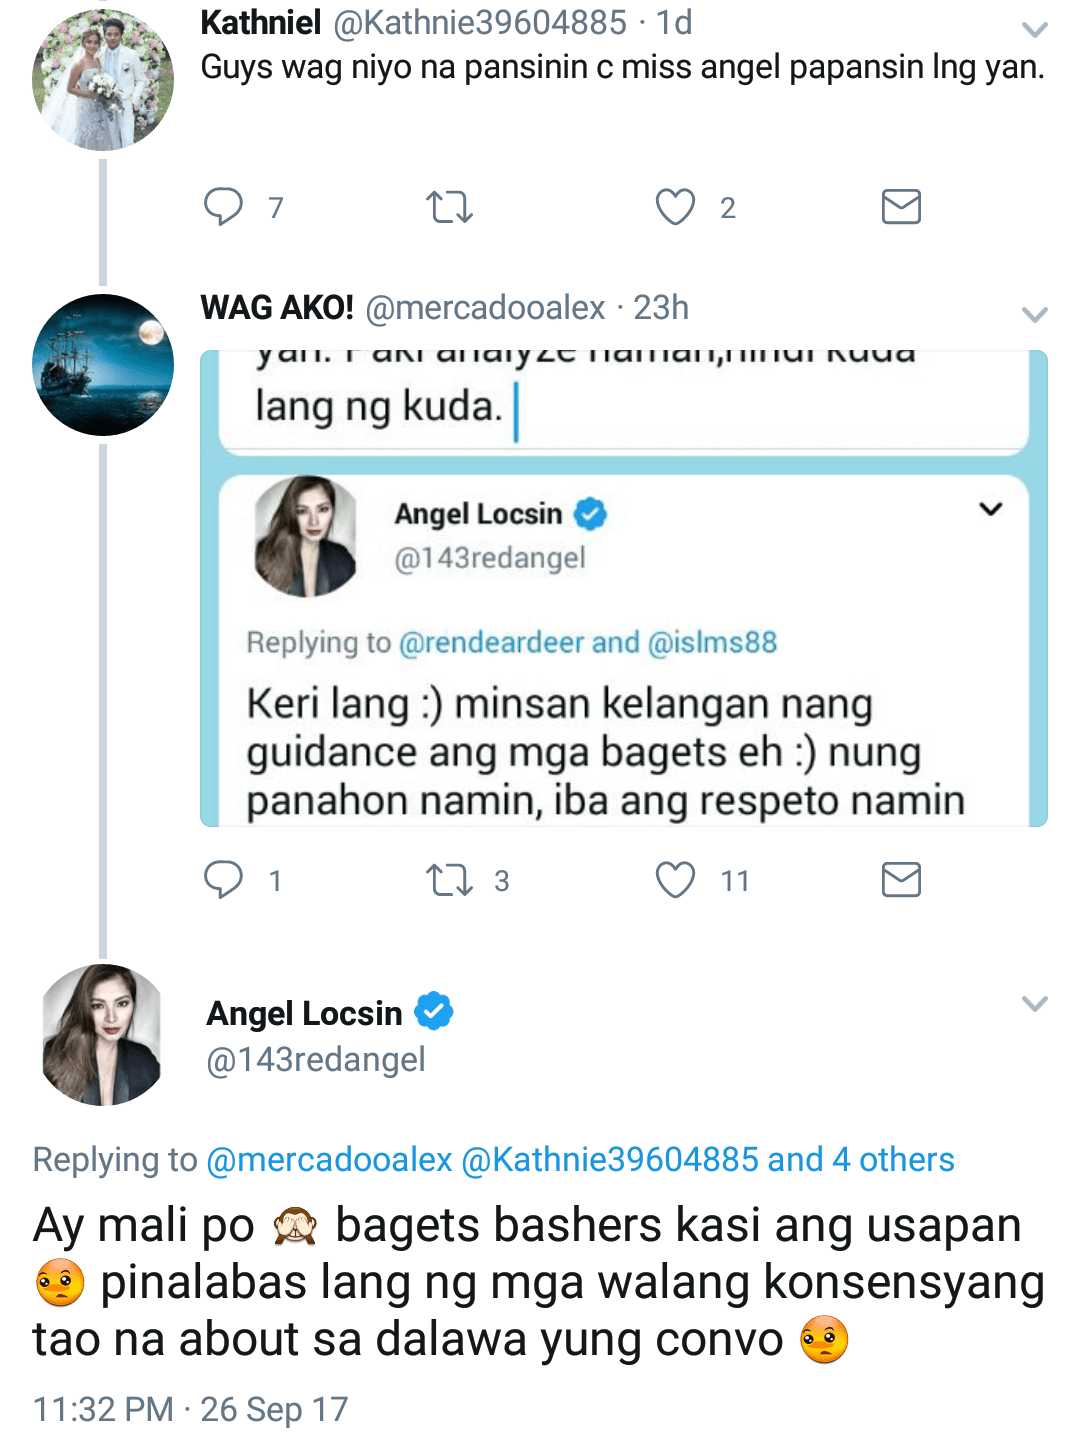 Angel Locsin Responds to Bashers